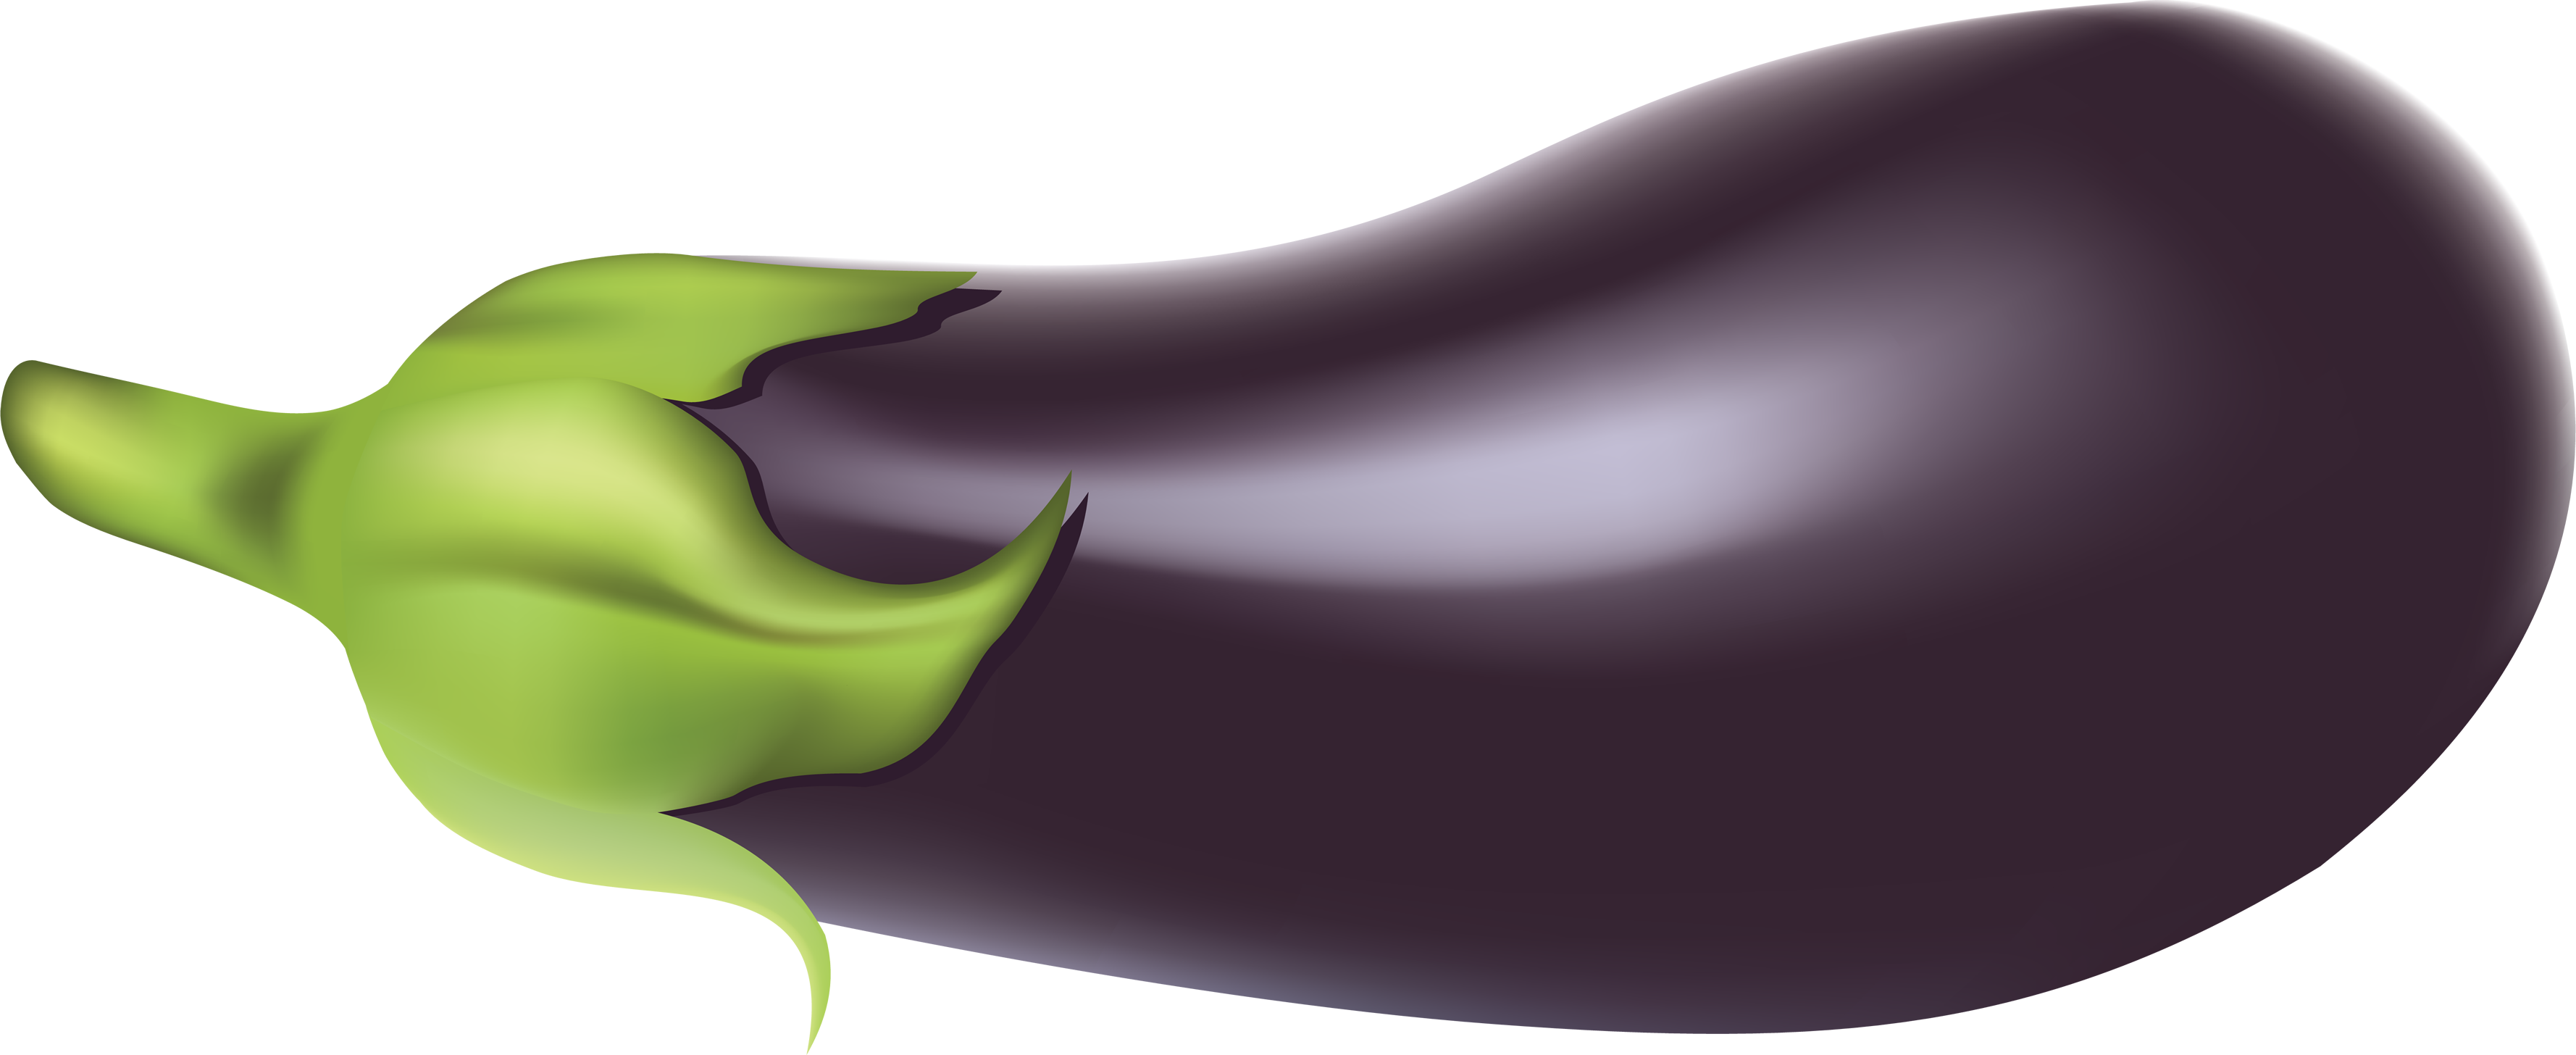 Eggplant png small. Vegetables free images download